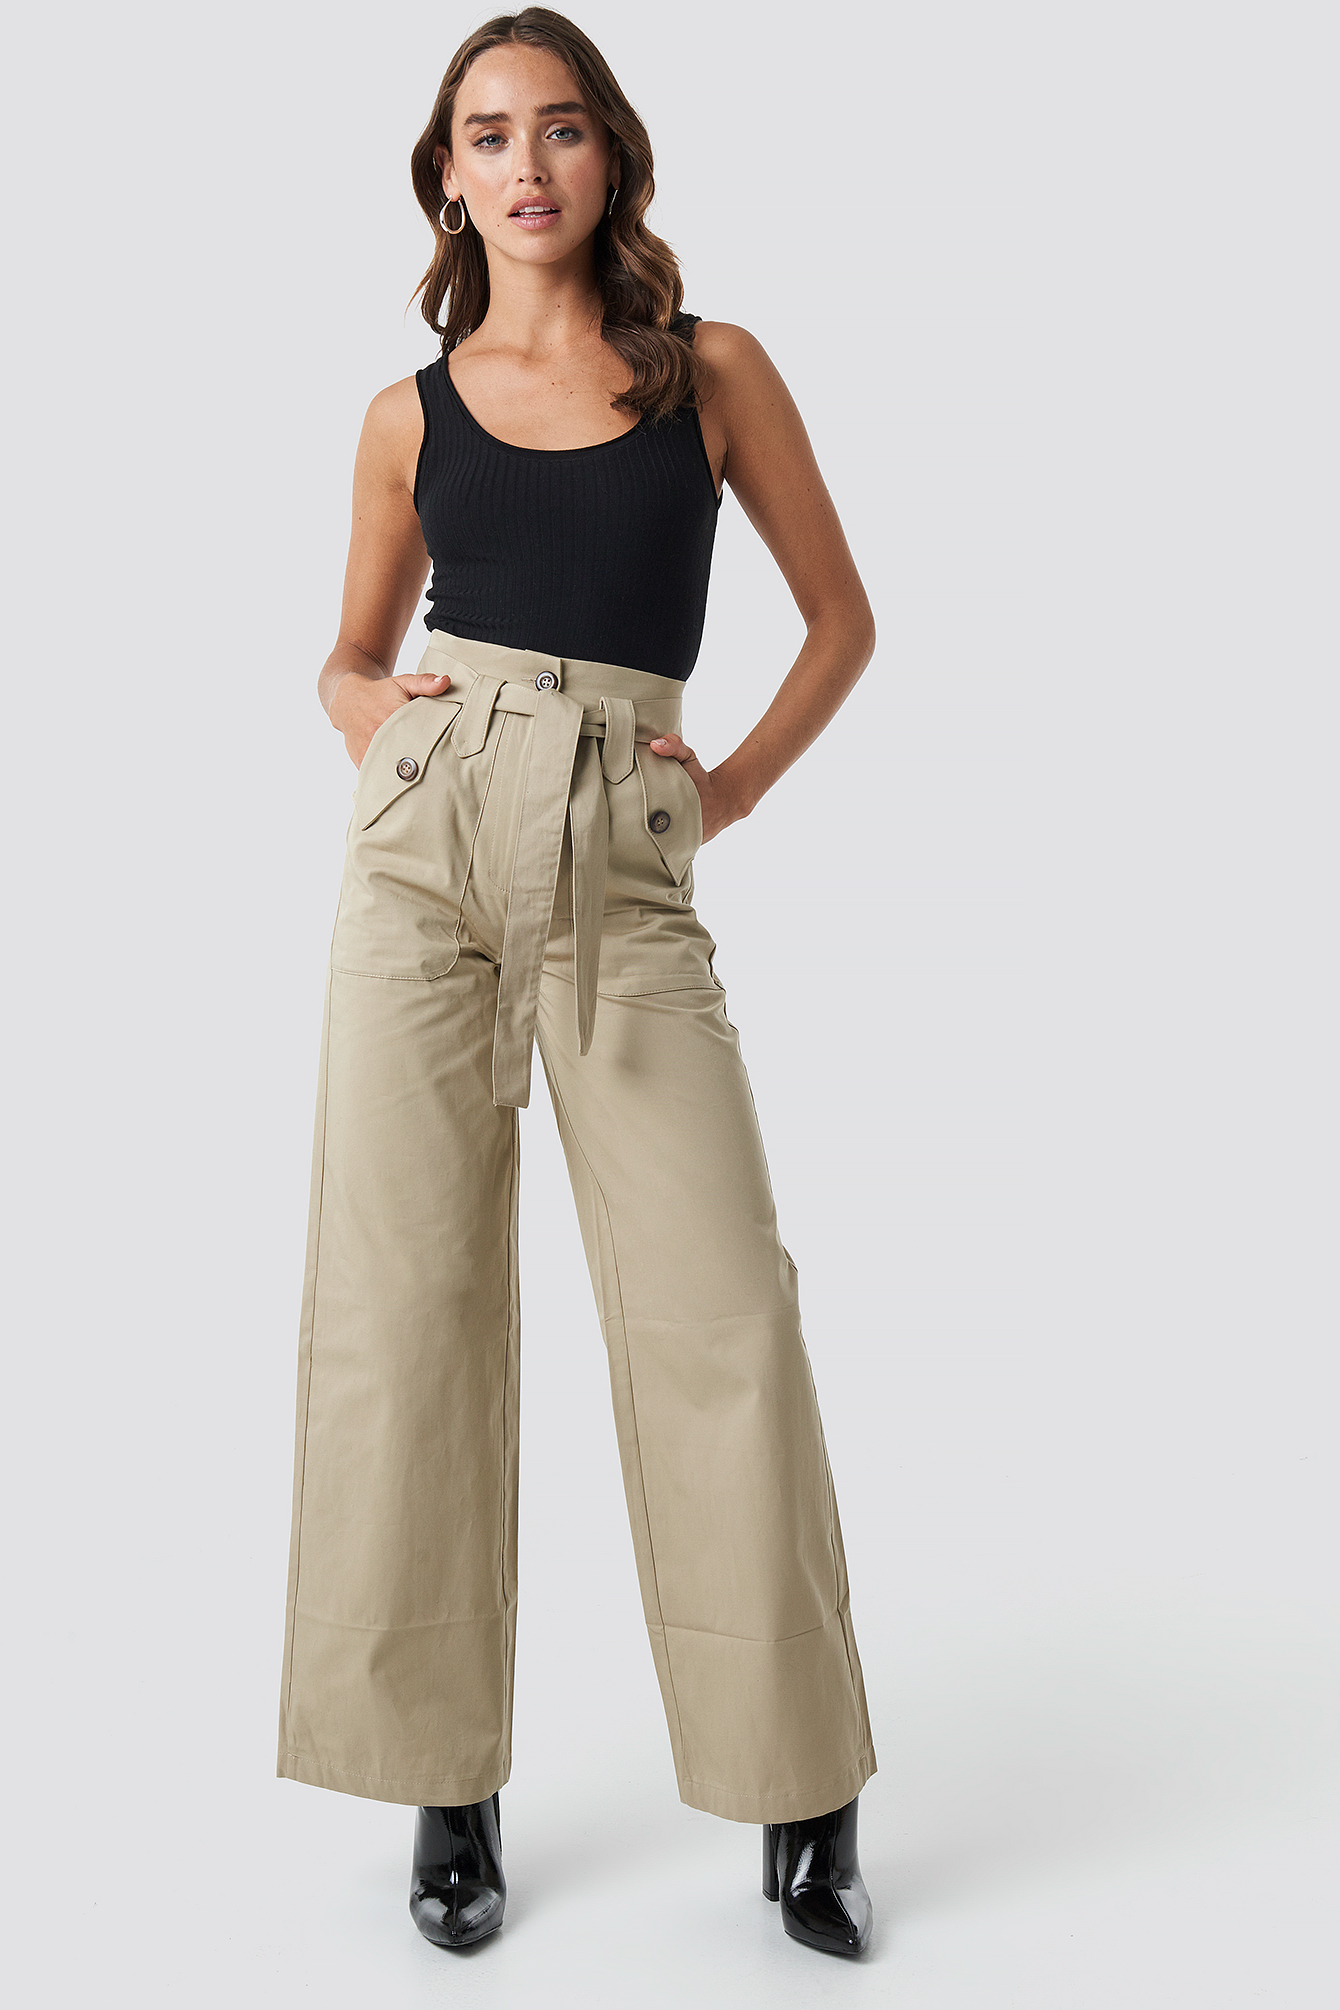 trendyol -  Belt Pocket Detailed Pants - Beige